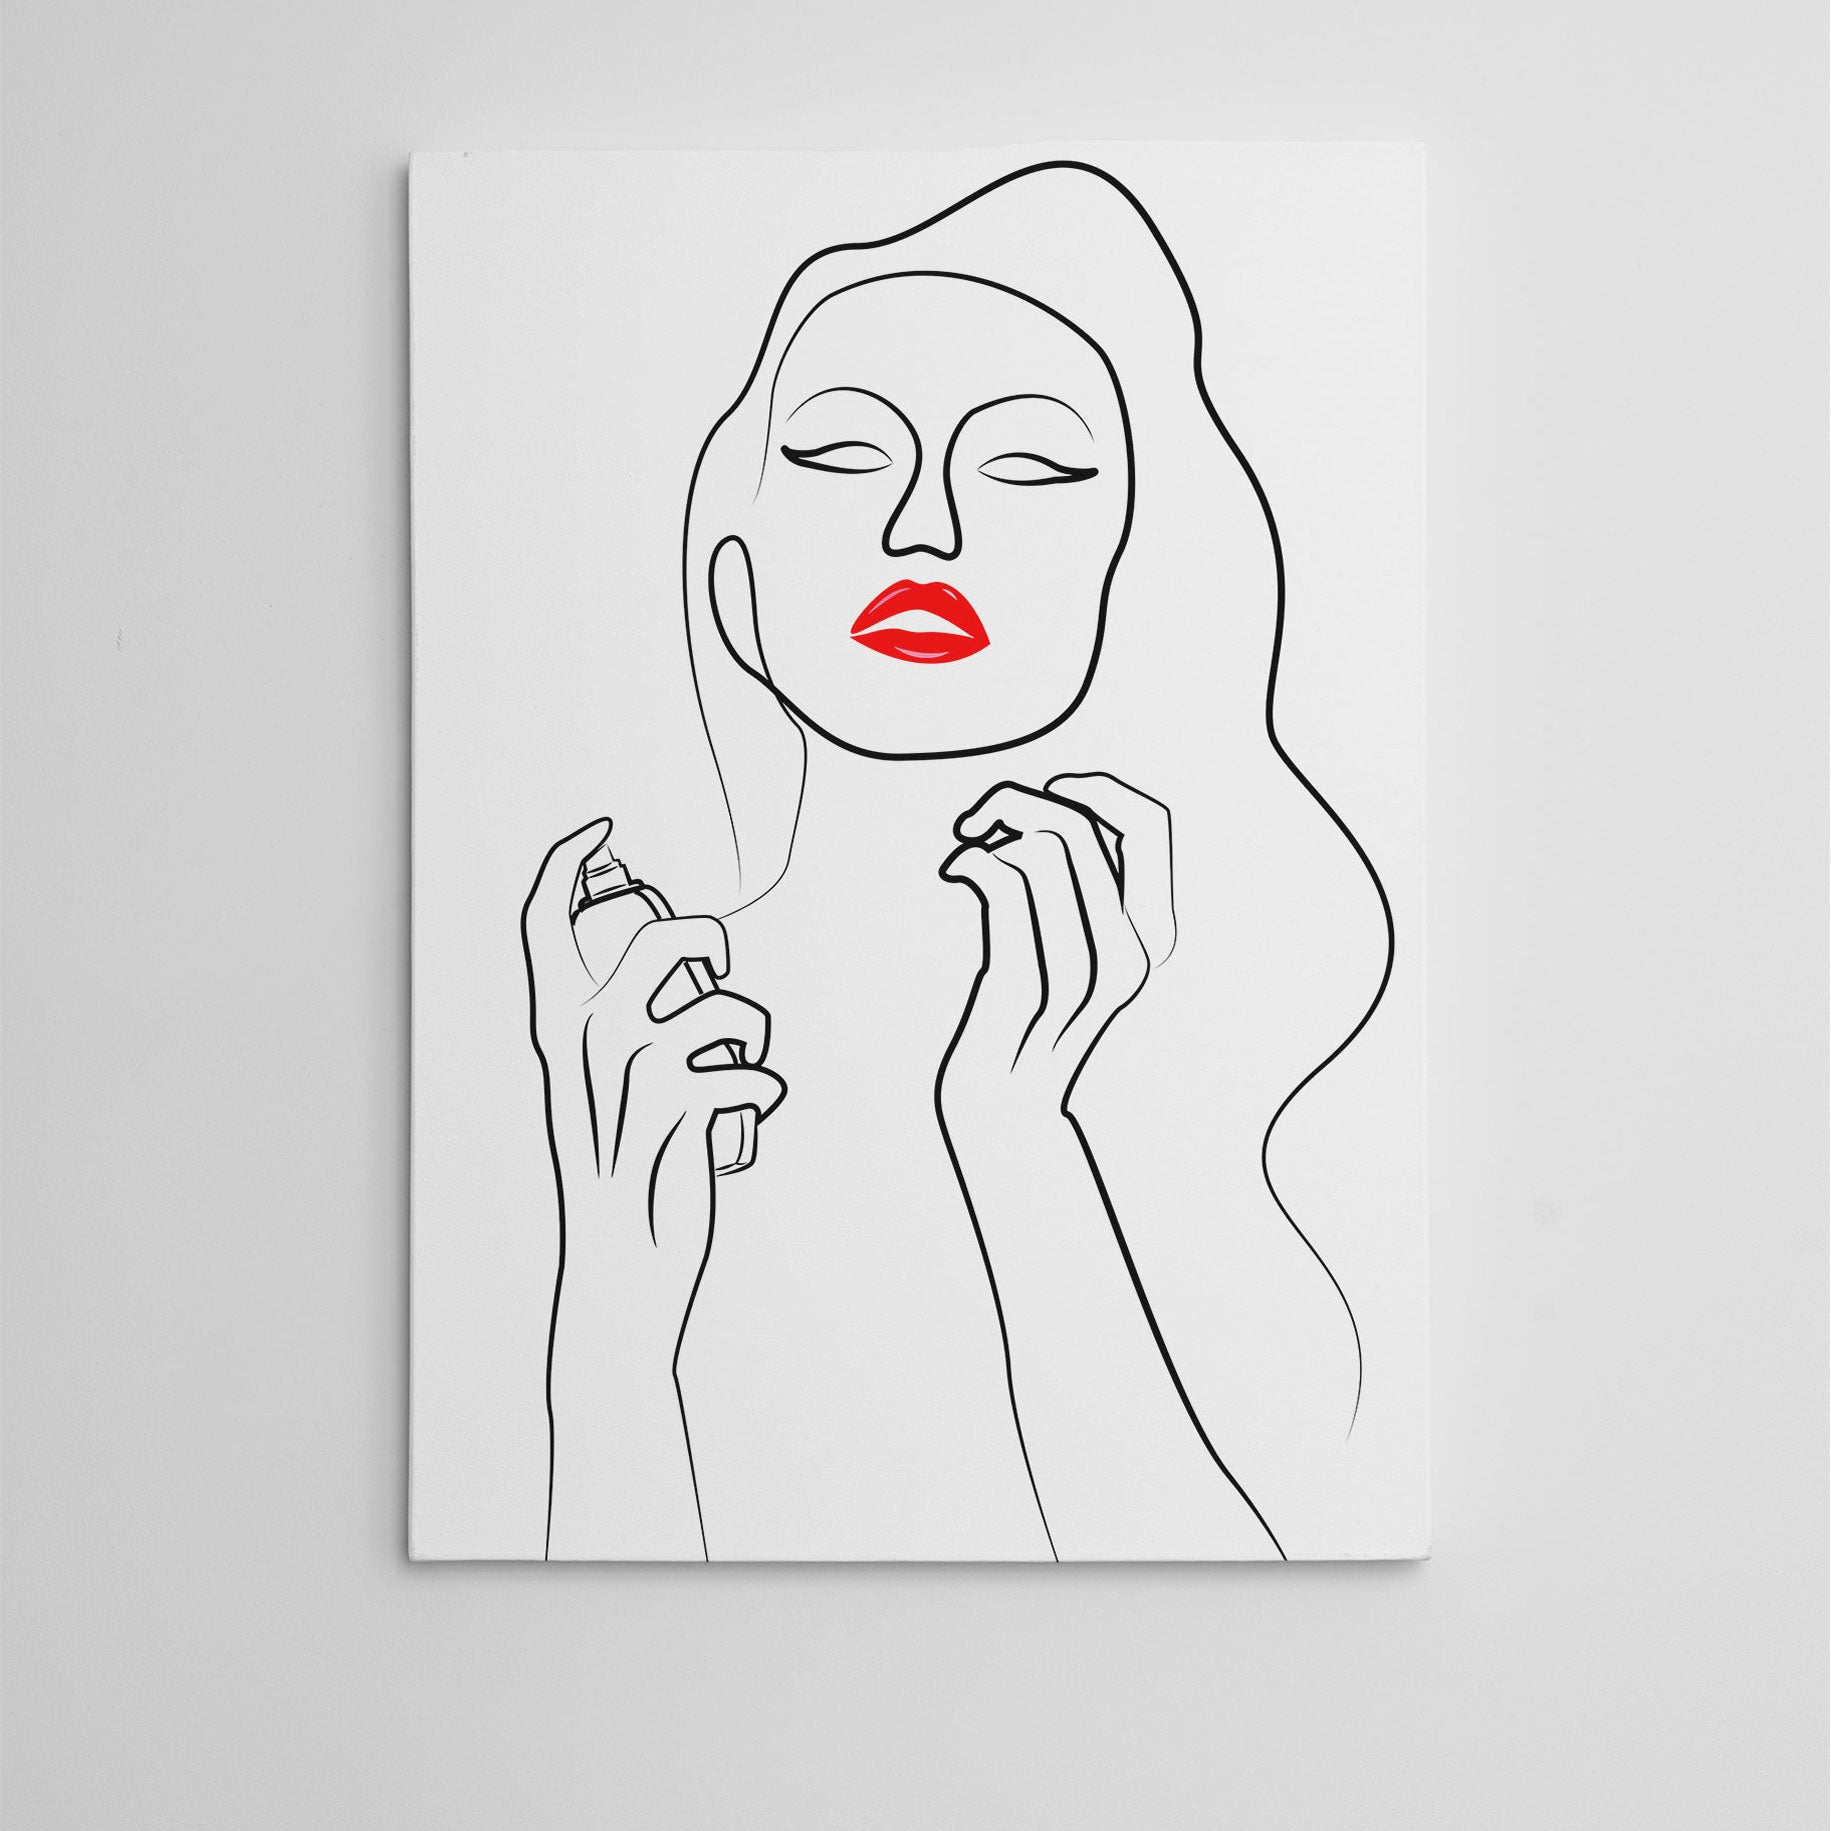 Beauty line art canvas print with a woman with red lips, holding a bottle of perfume.